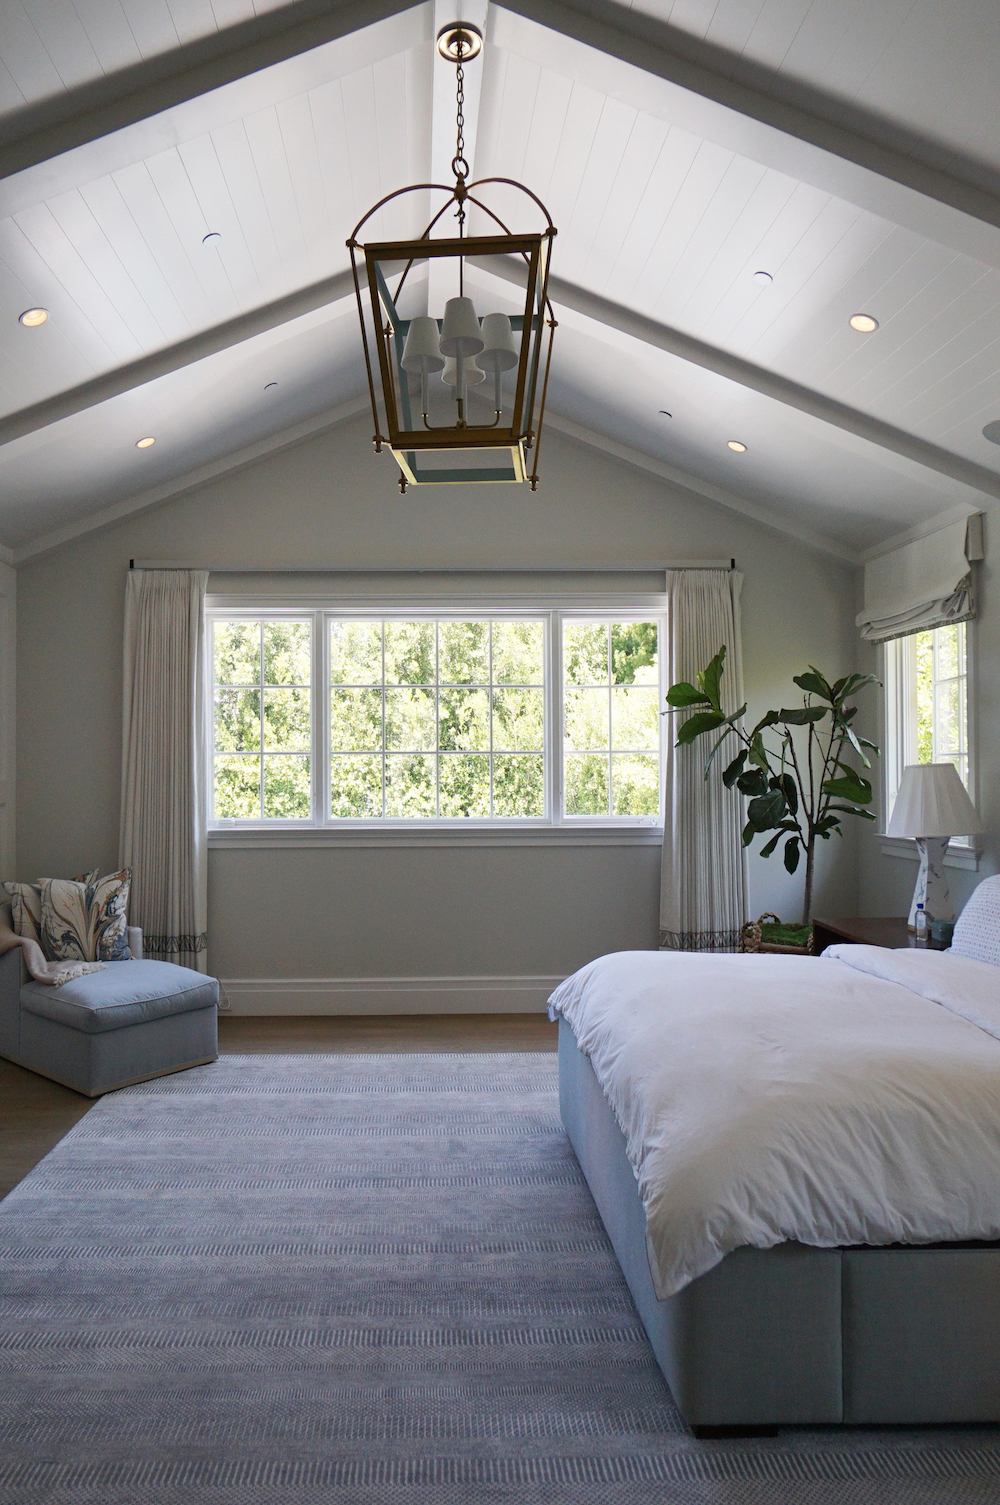 Chango & Co. - Pacific Palisades, L.A. - Master Bedroom, Option 1, Before.jpg